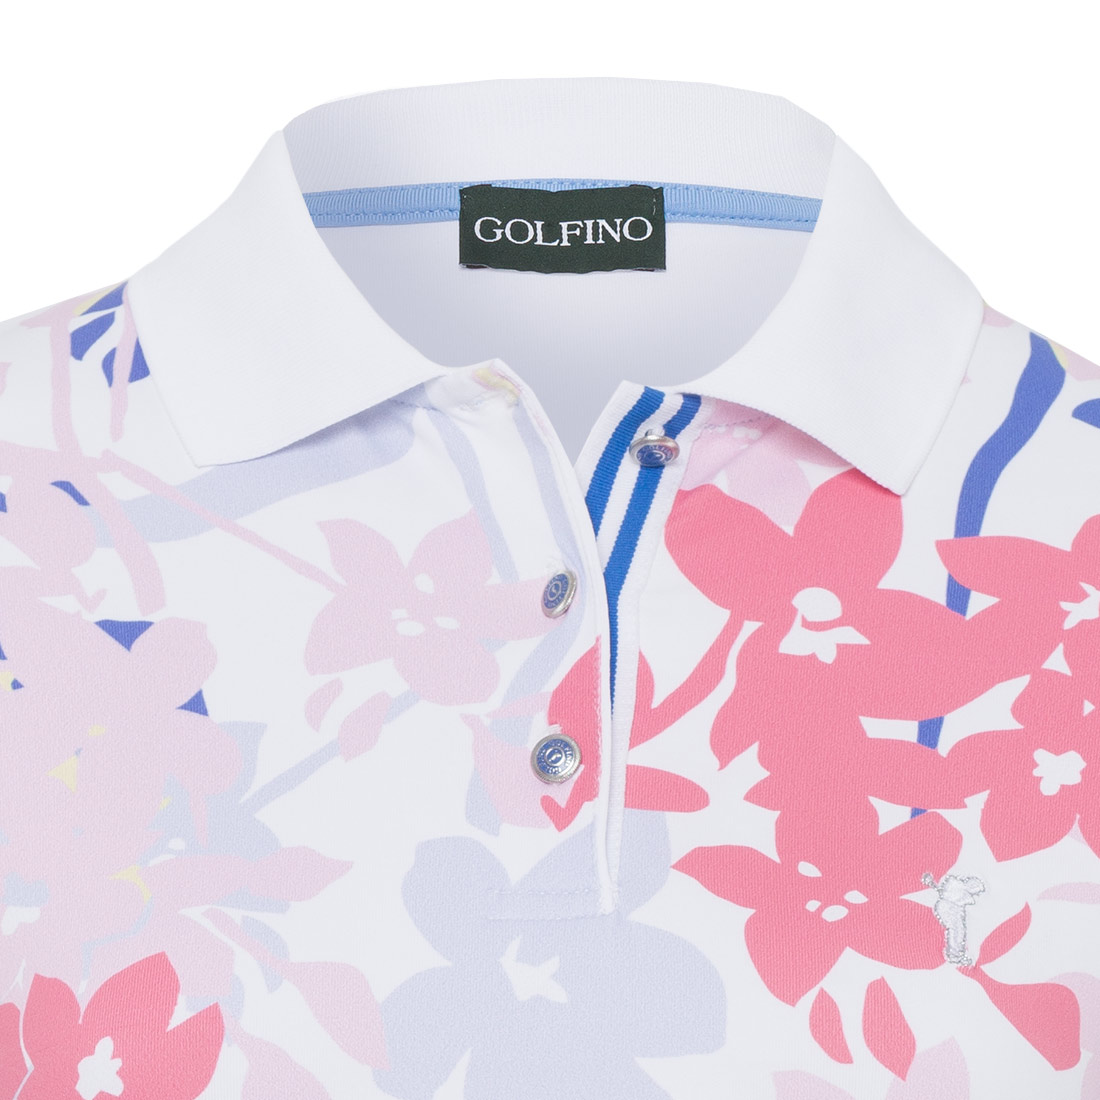 Damen Funktions-Golfpolo